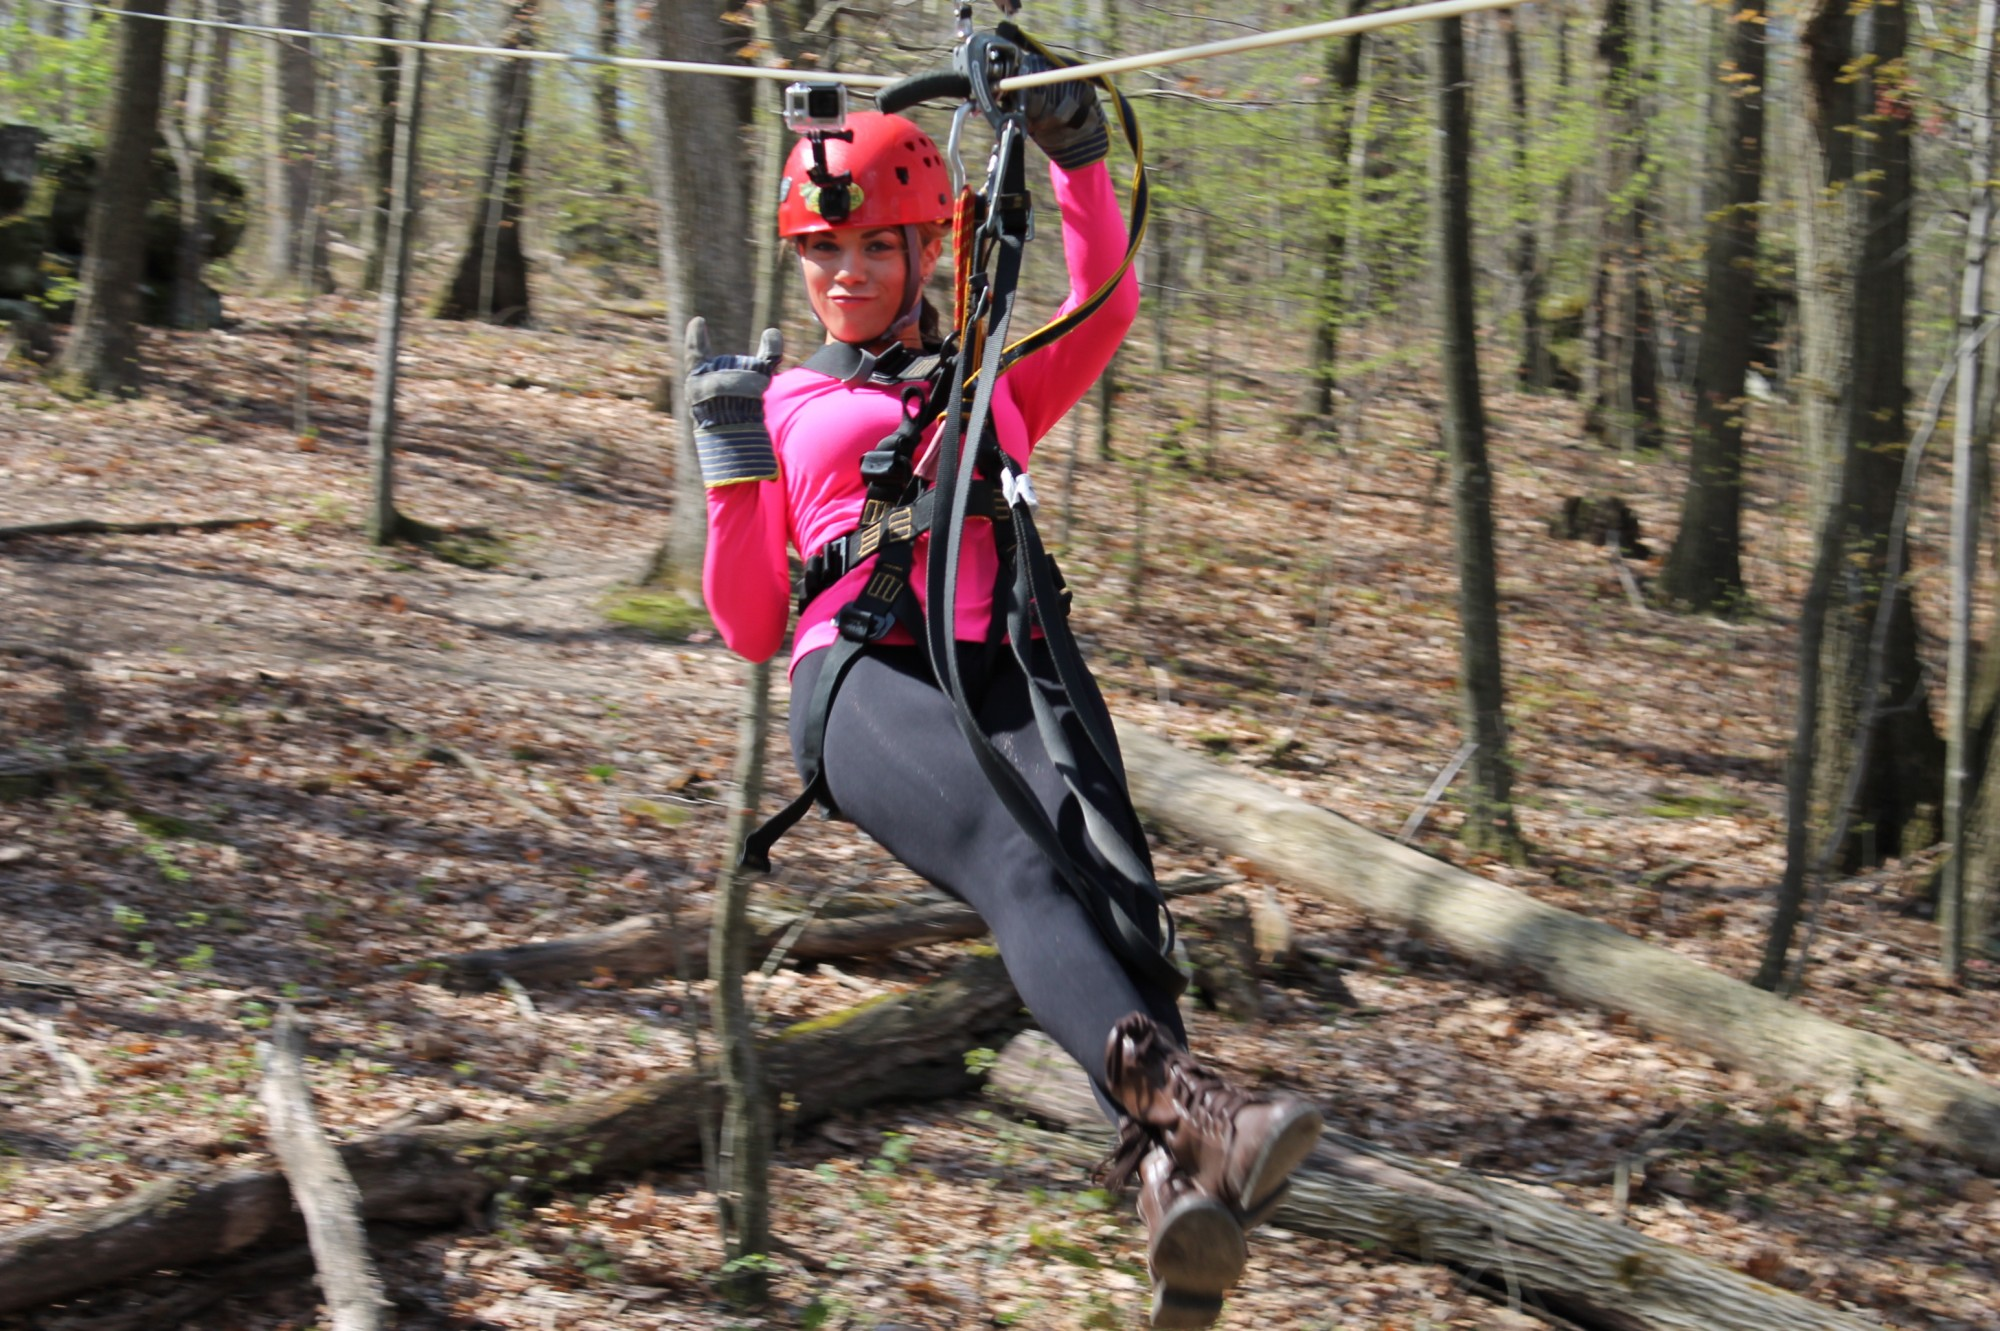 Miss Ohio Zipping at Tree Frog Canopy Tours